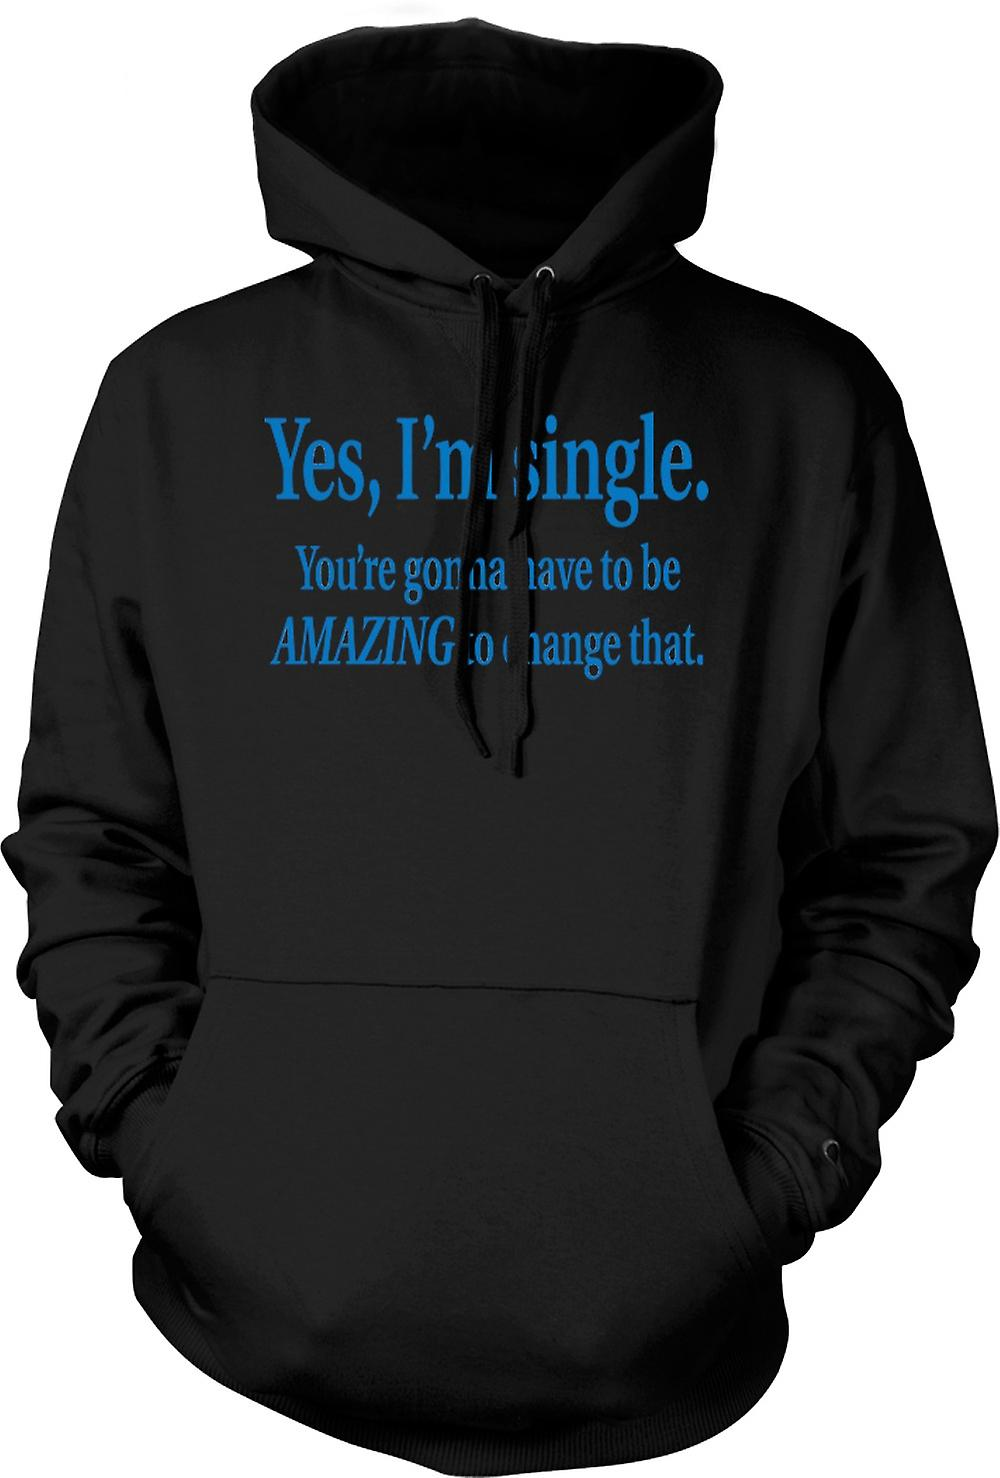 Mens Hoodie - I'm Single But You're Gonna Have To Be Amazing To Change That